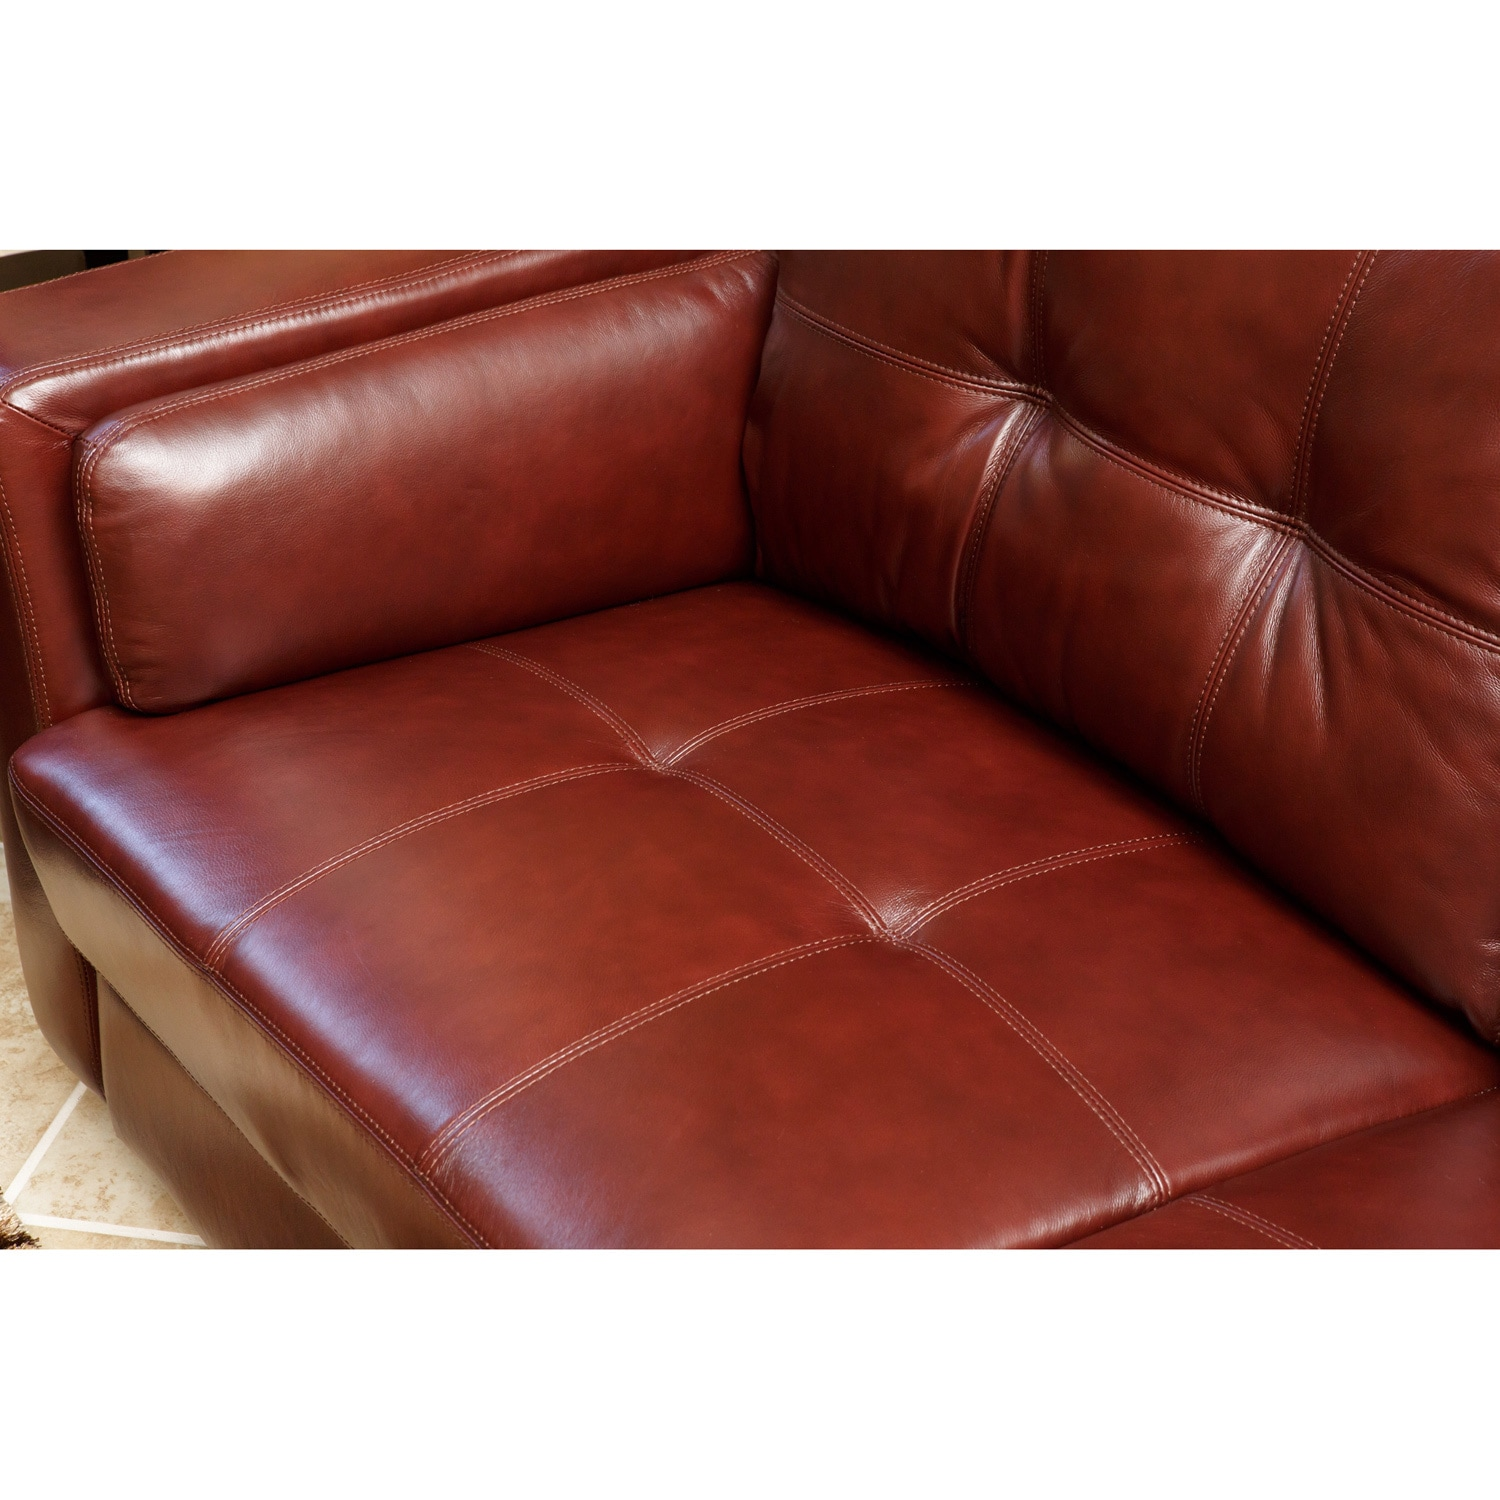 Abbyson Torrance Burgundy Top Grain Leather Sofa And Armchair Set Free Shipping Today 6304836